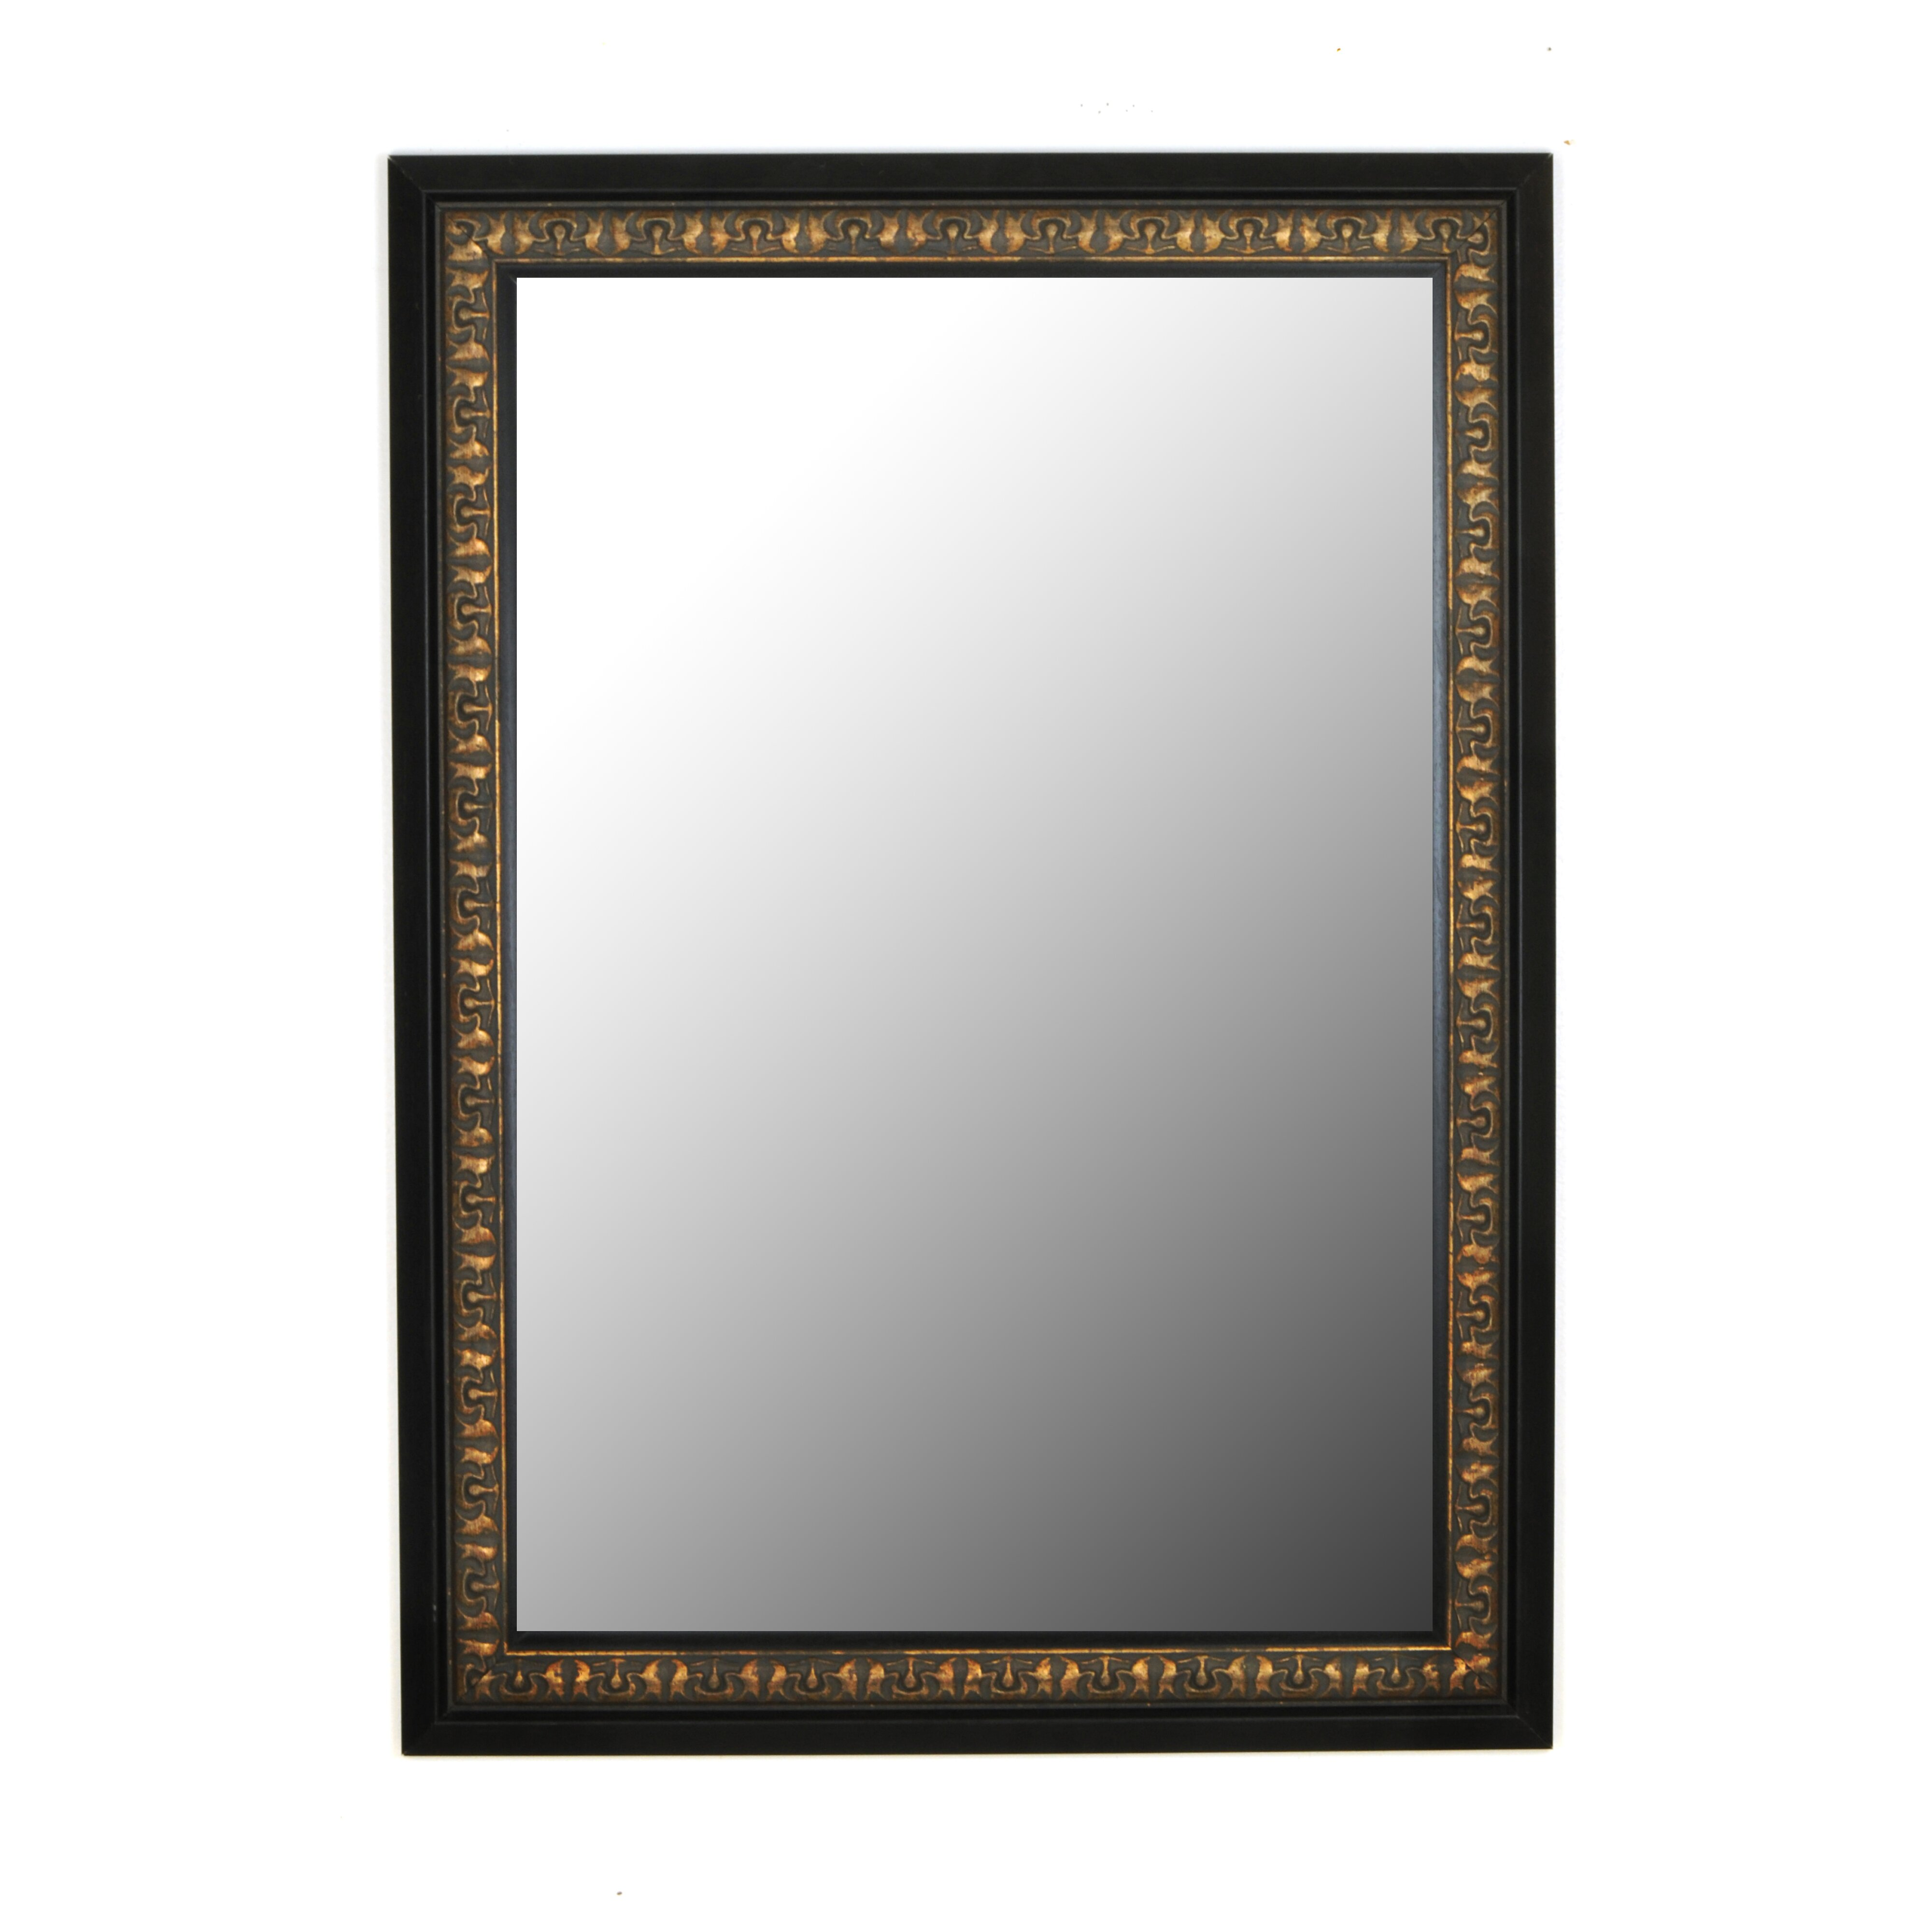 Second look mirrors mumbai copper gold black surround for Mirror that look